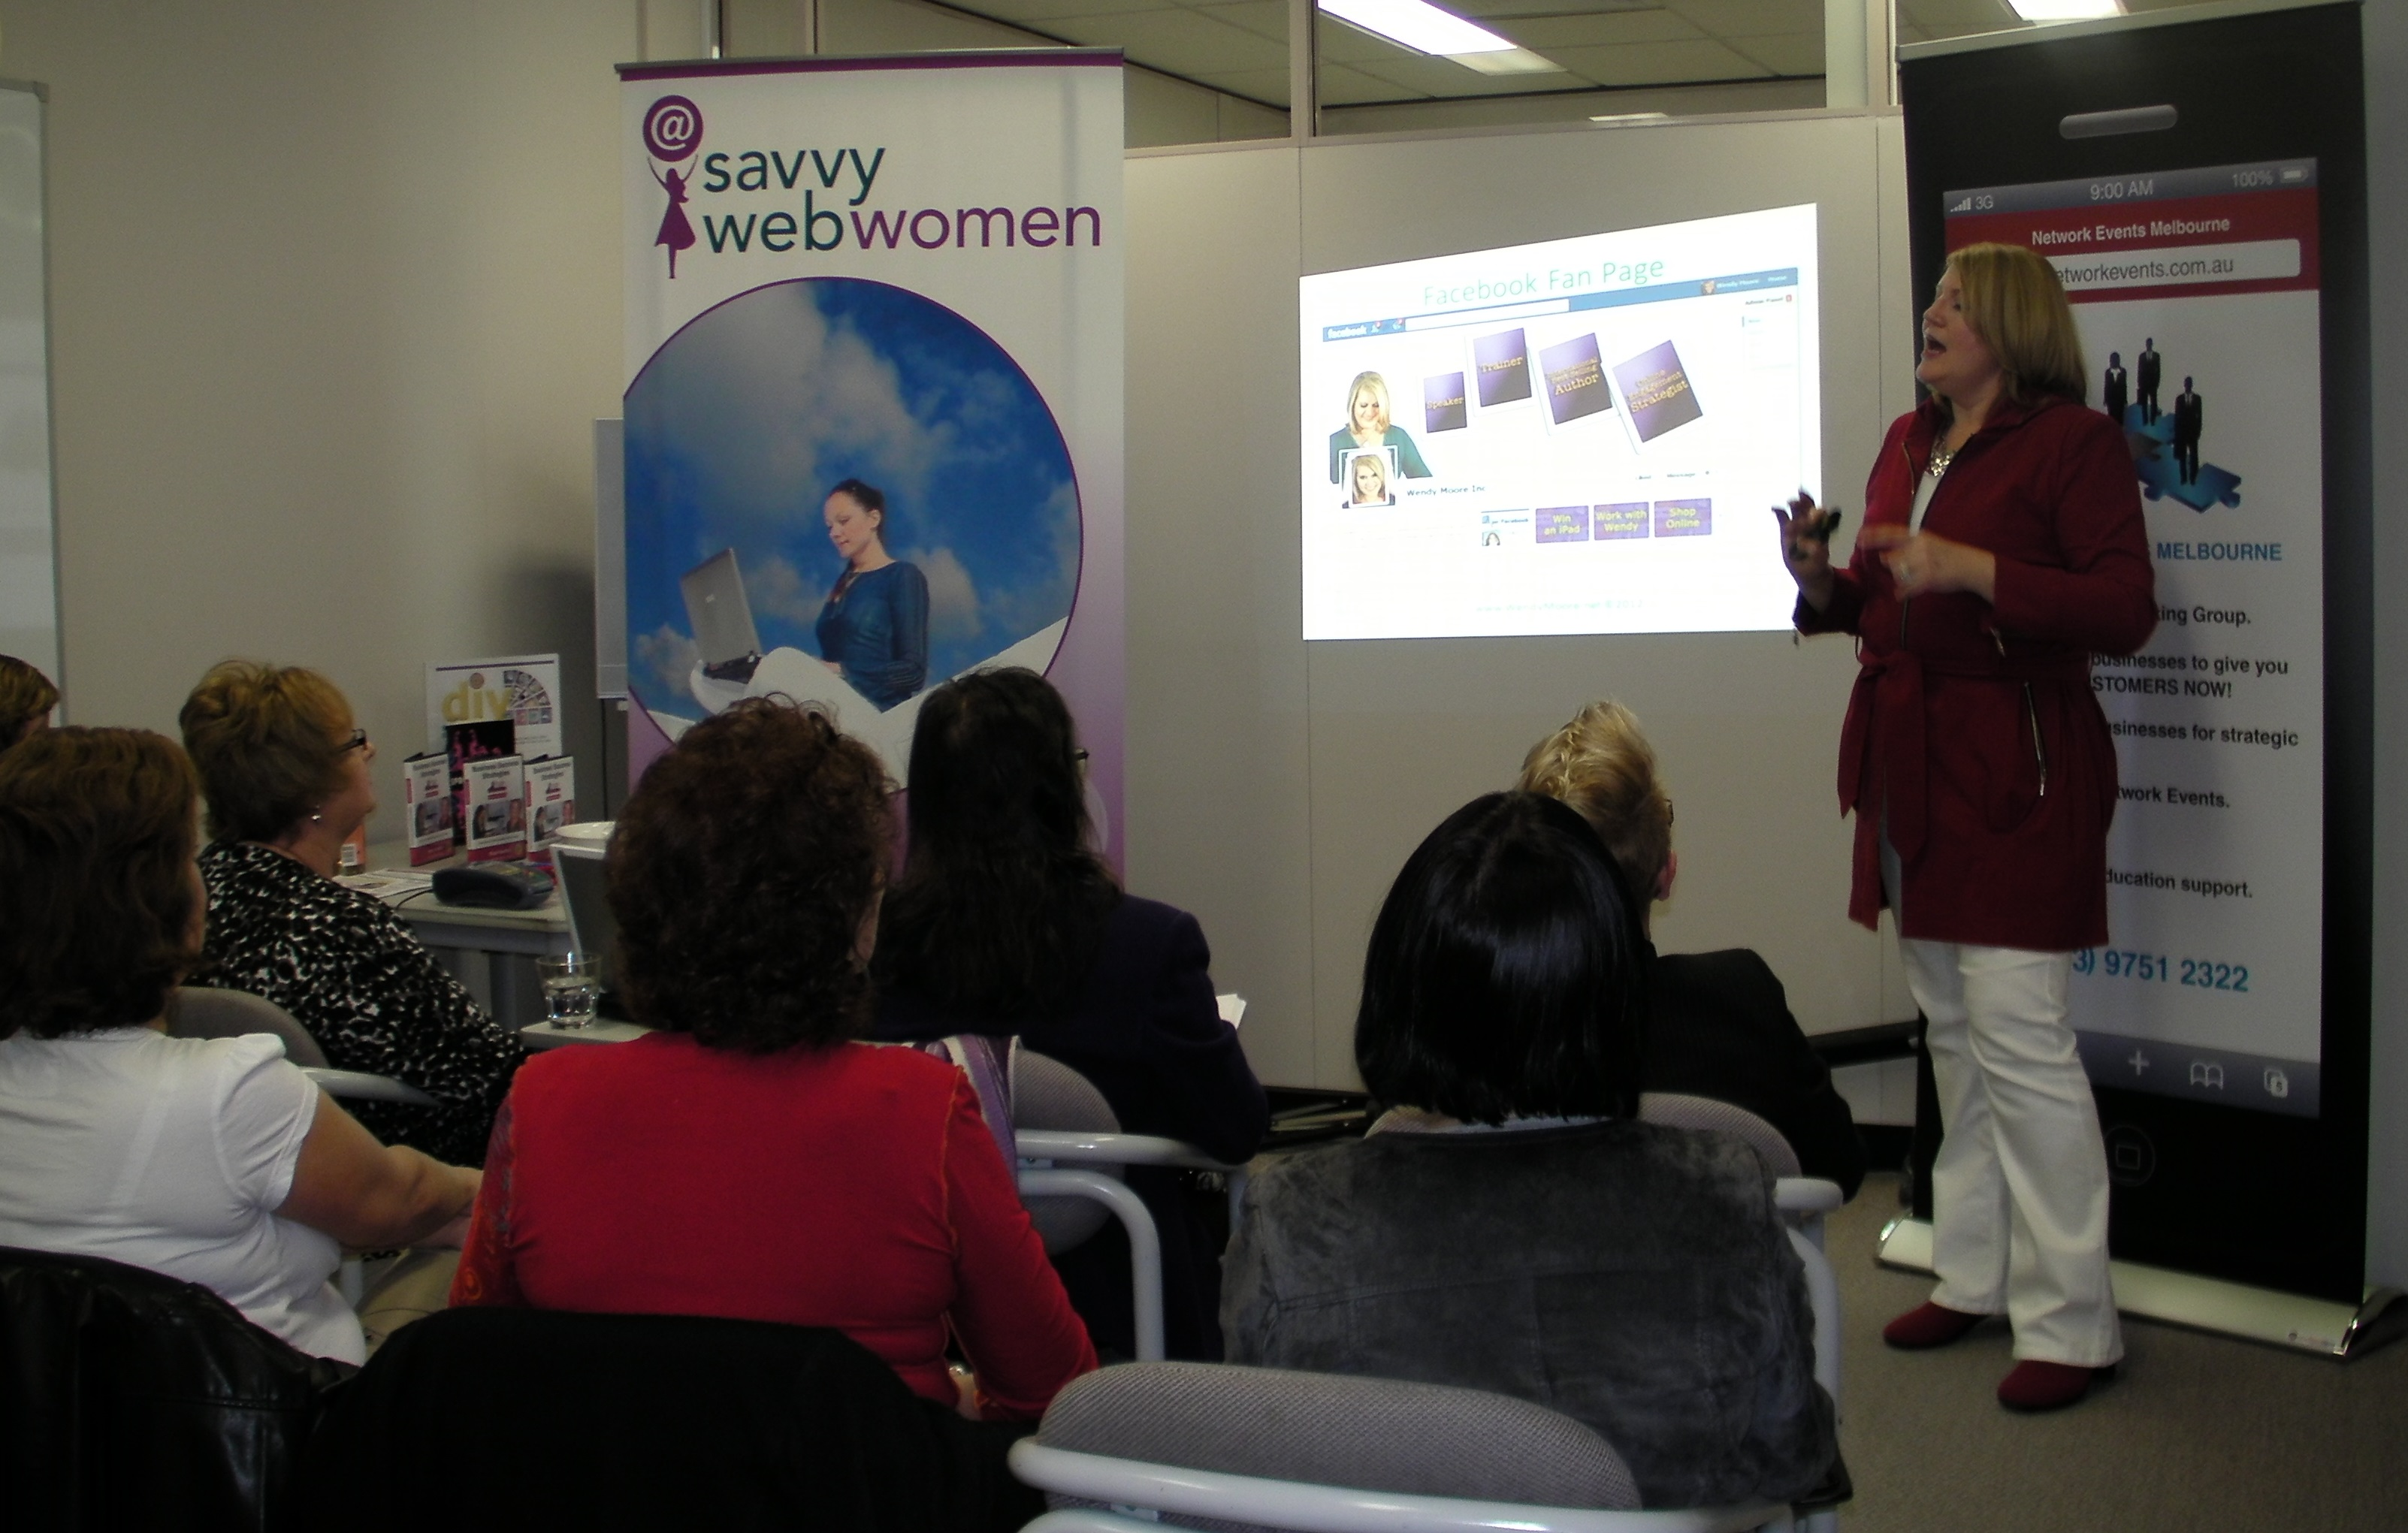 Wendy Chamberlain presenting to audience